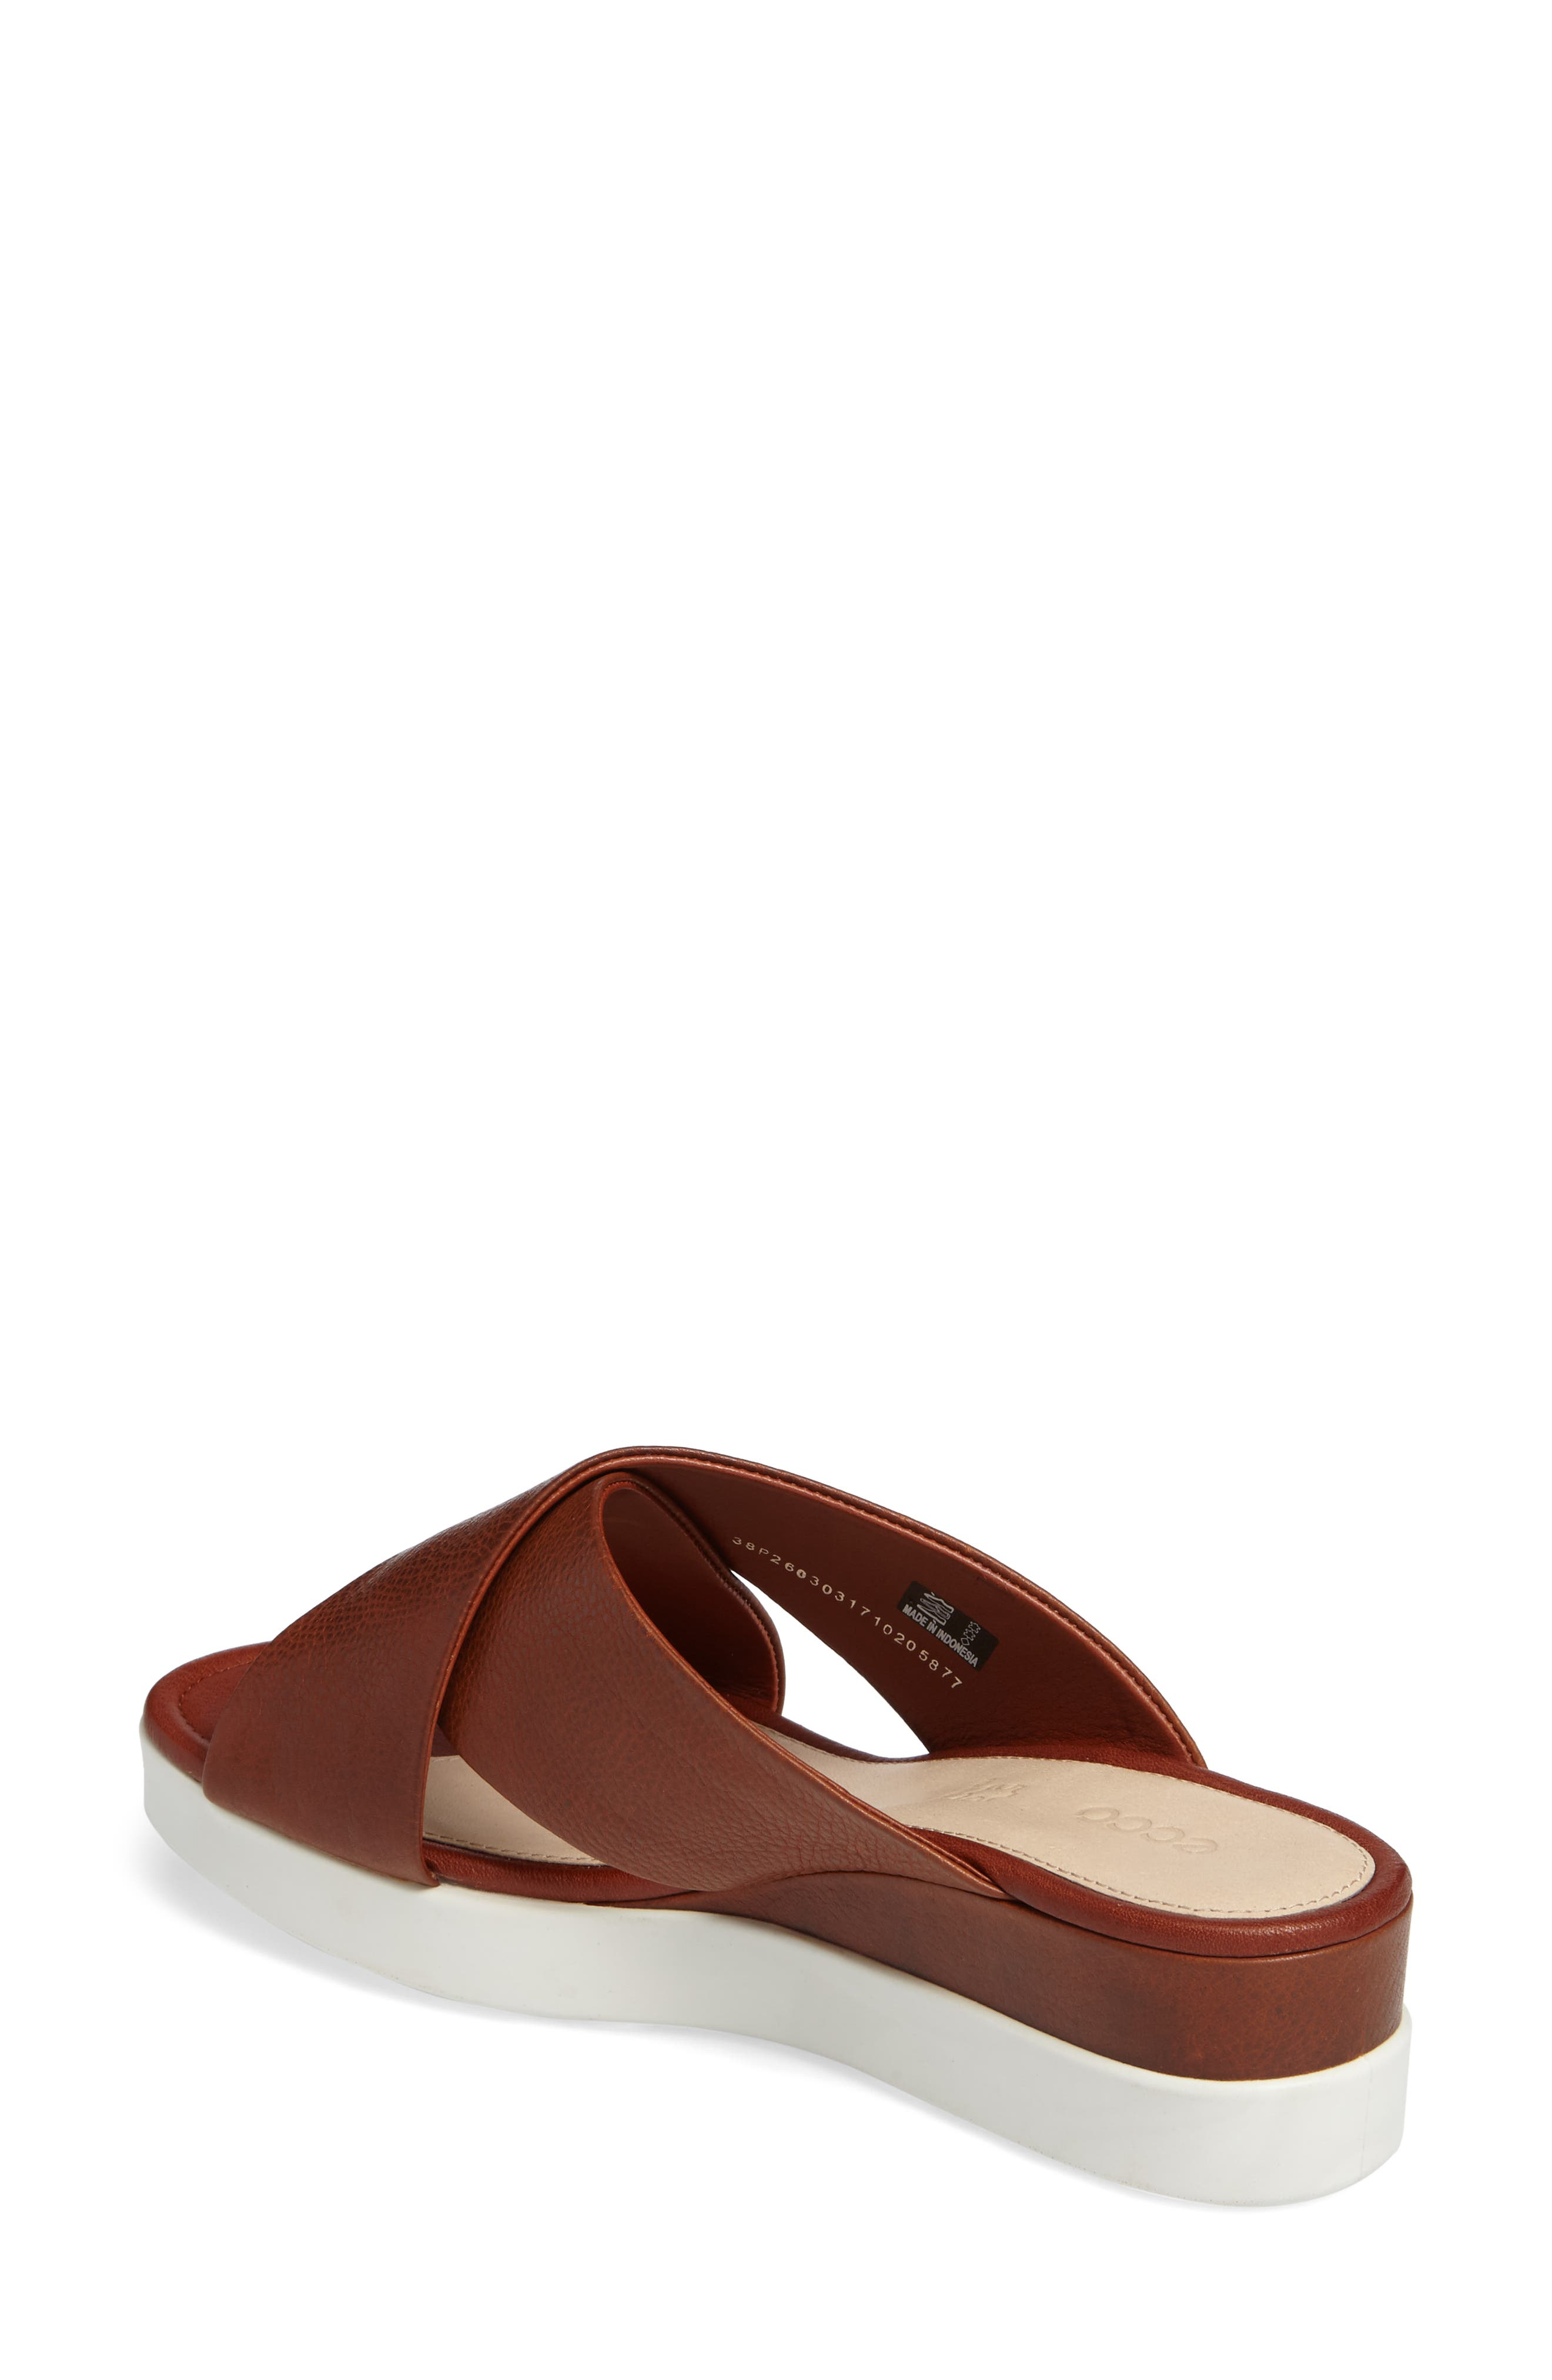 Touch Slide Sandal,                             Alternate thumbnail 8, color,